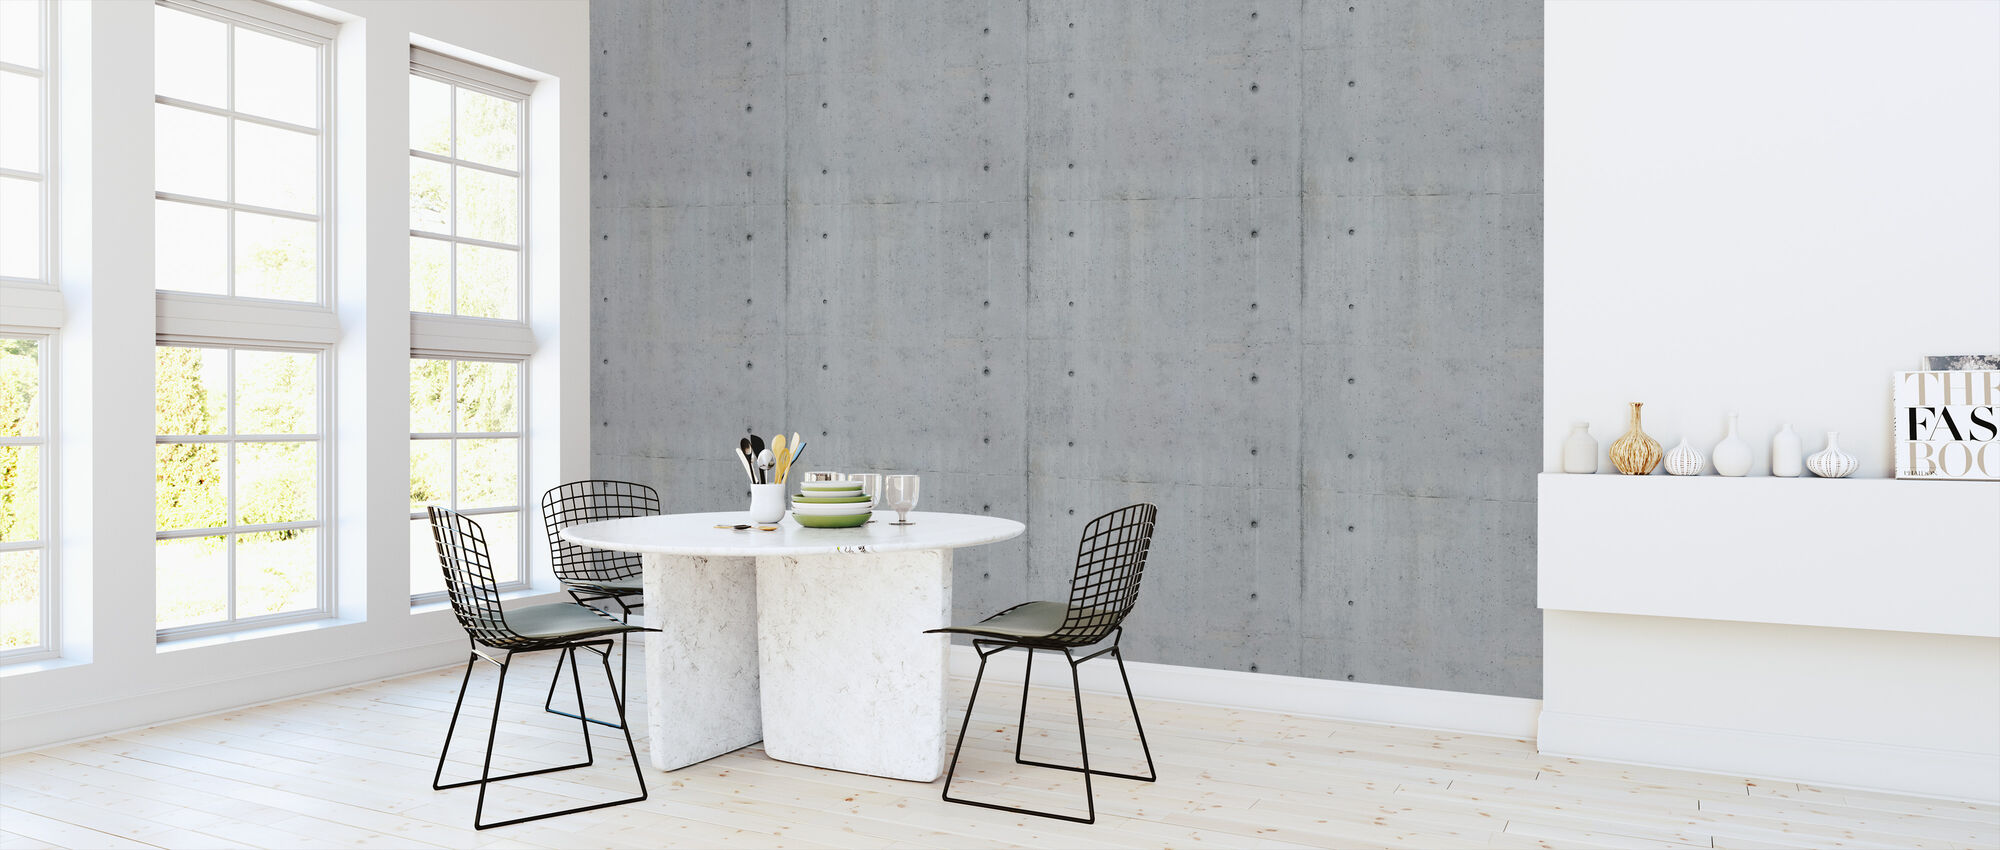 Concrete Mold Pattern - Wallpaper - Kitchen